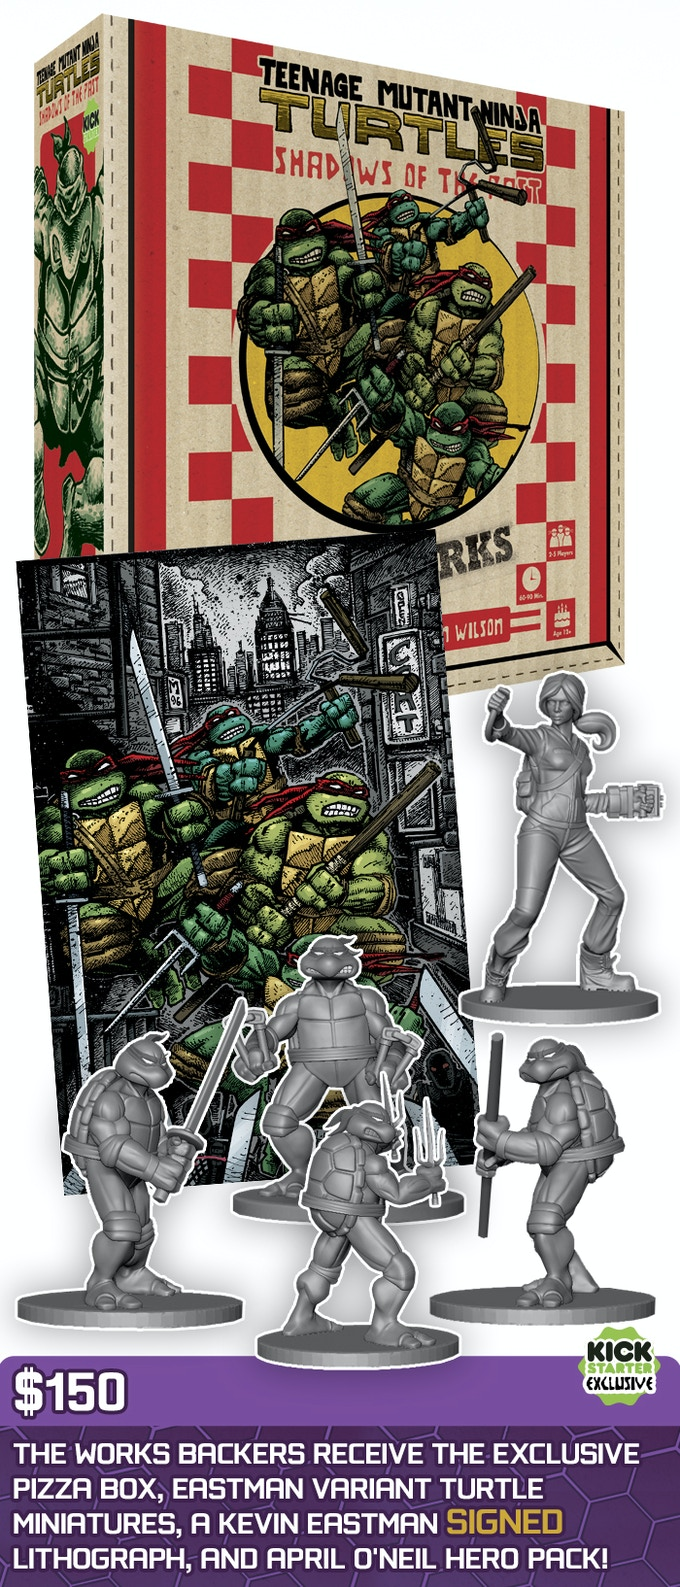 Teenage Mutant Ninja Turtles: Shadows of the Past (Kickstarter Edition) - USED - By Seller No: 1969 David Whitford